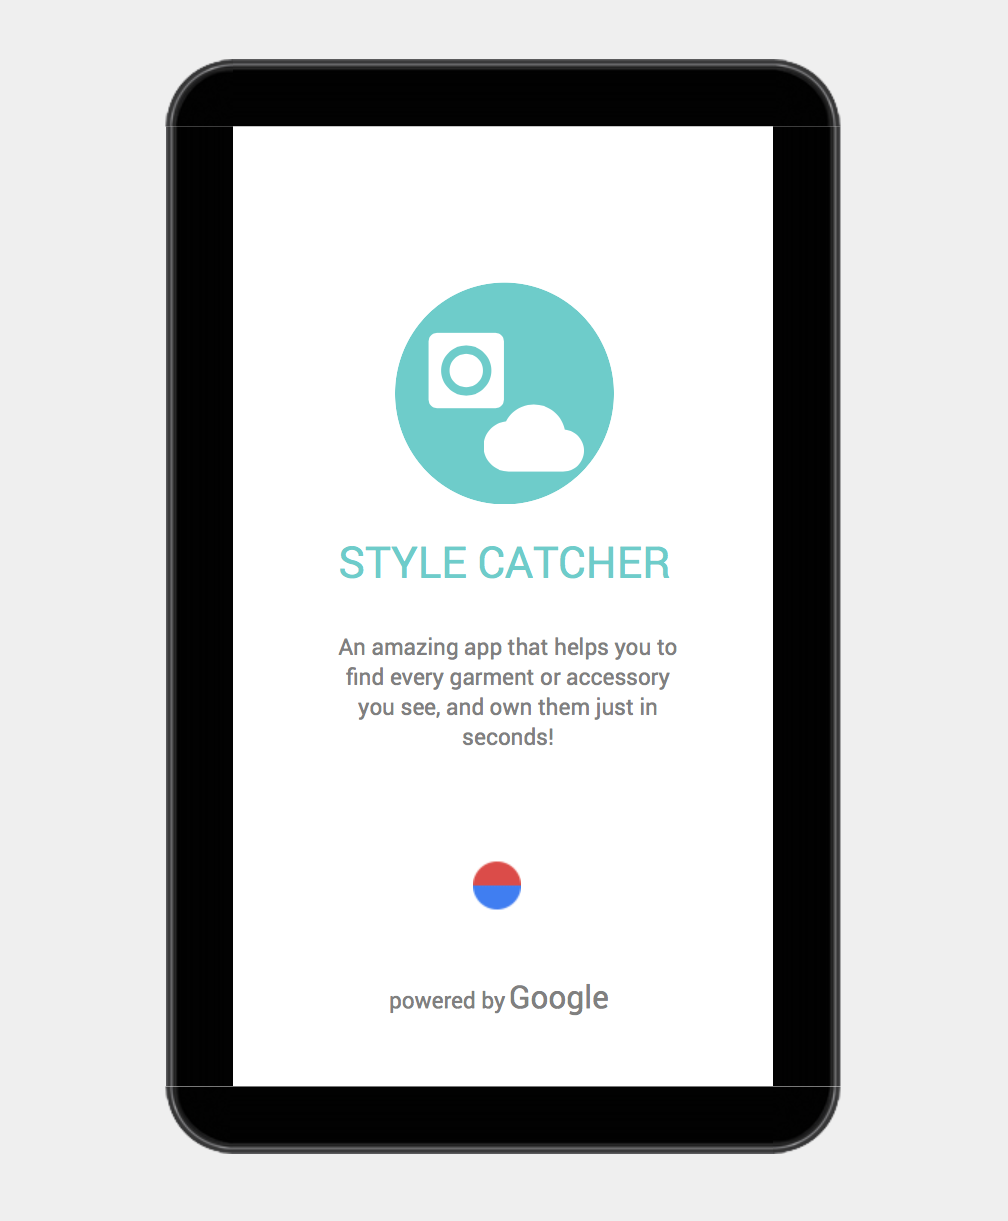 stylecatcher_wires_0_intro.png